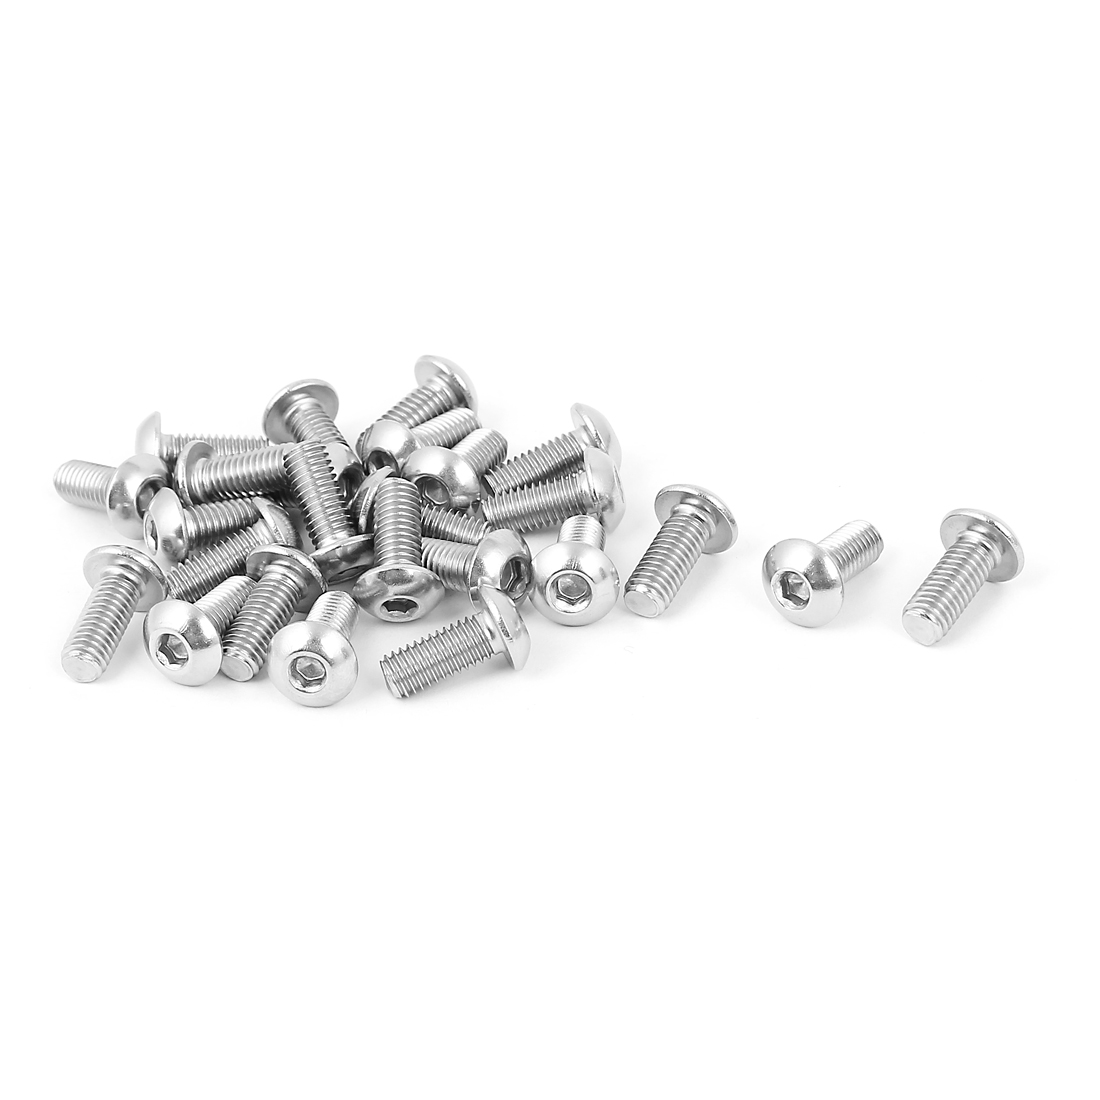 Full Thread Stainless Steel Button Head Socket Cap Screw Silver Tone M5 x 12mm 25 Pcs